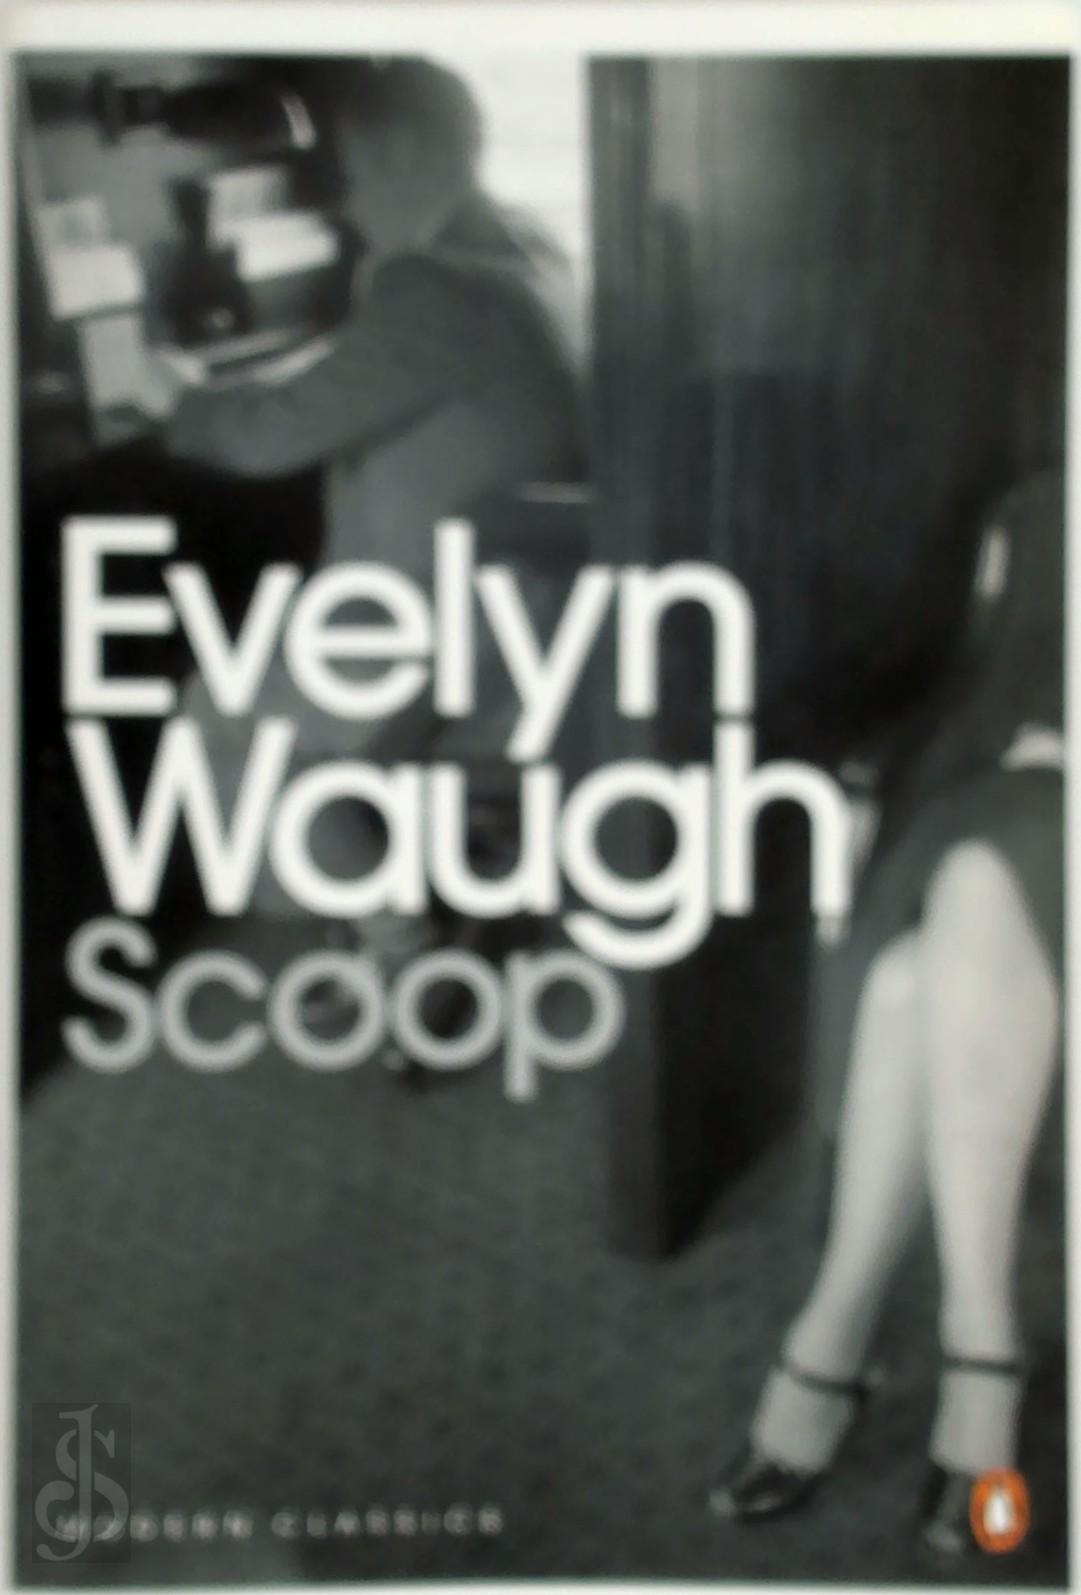 Evelyn Waugh - Scoop